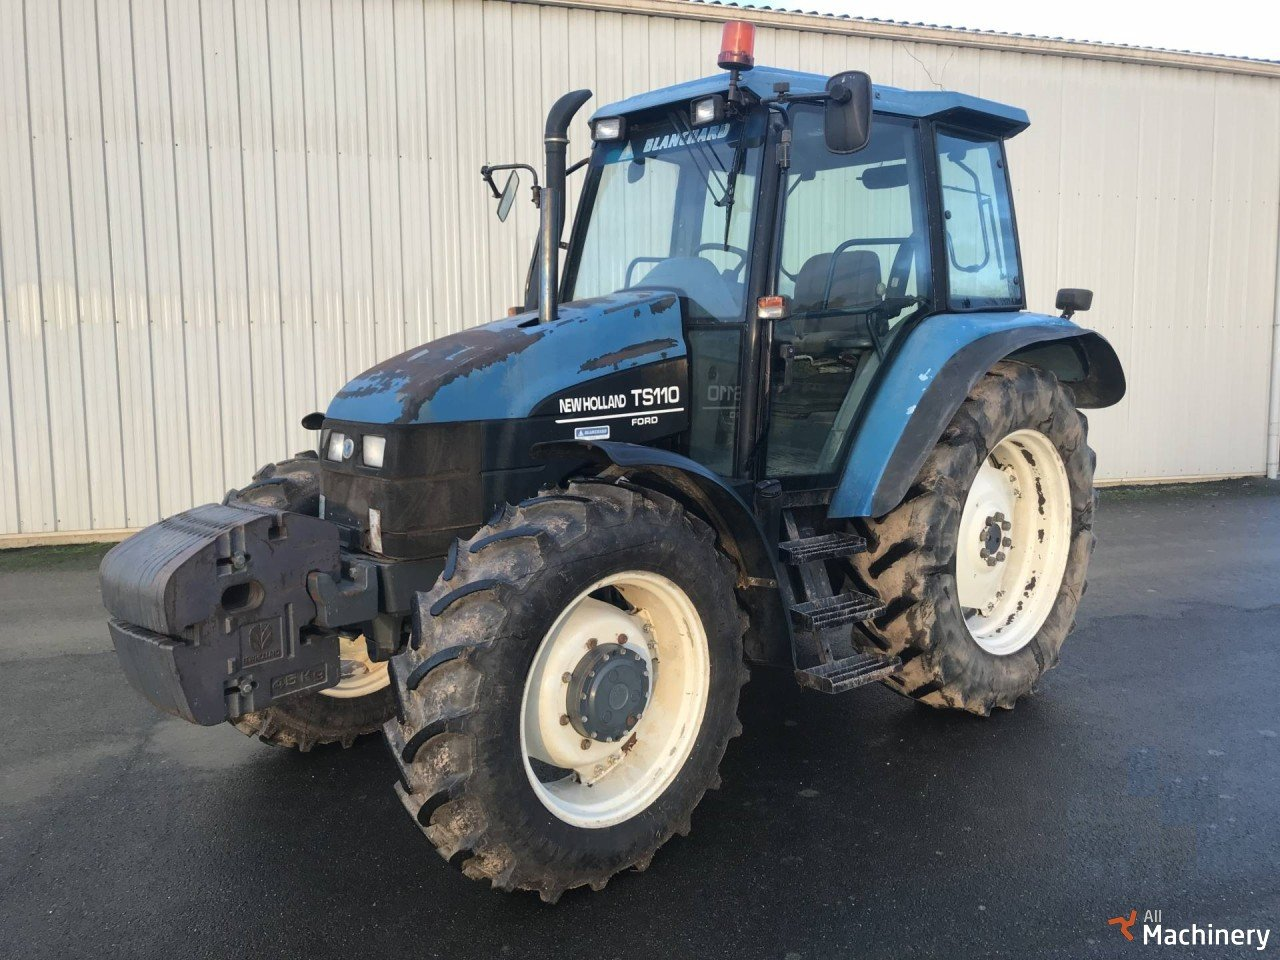 Classified Ads - NEW HOLLAND TS110 4WD Wheel tractors